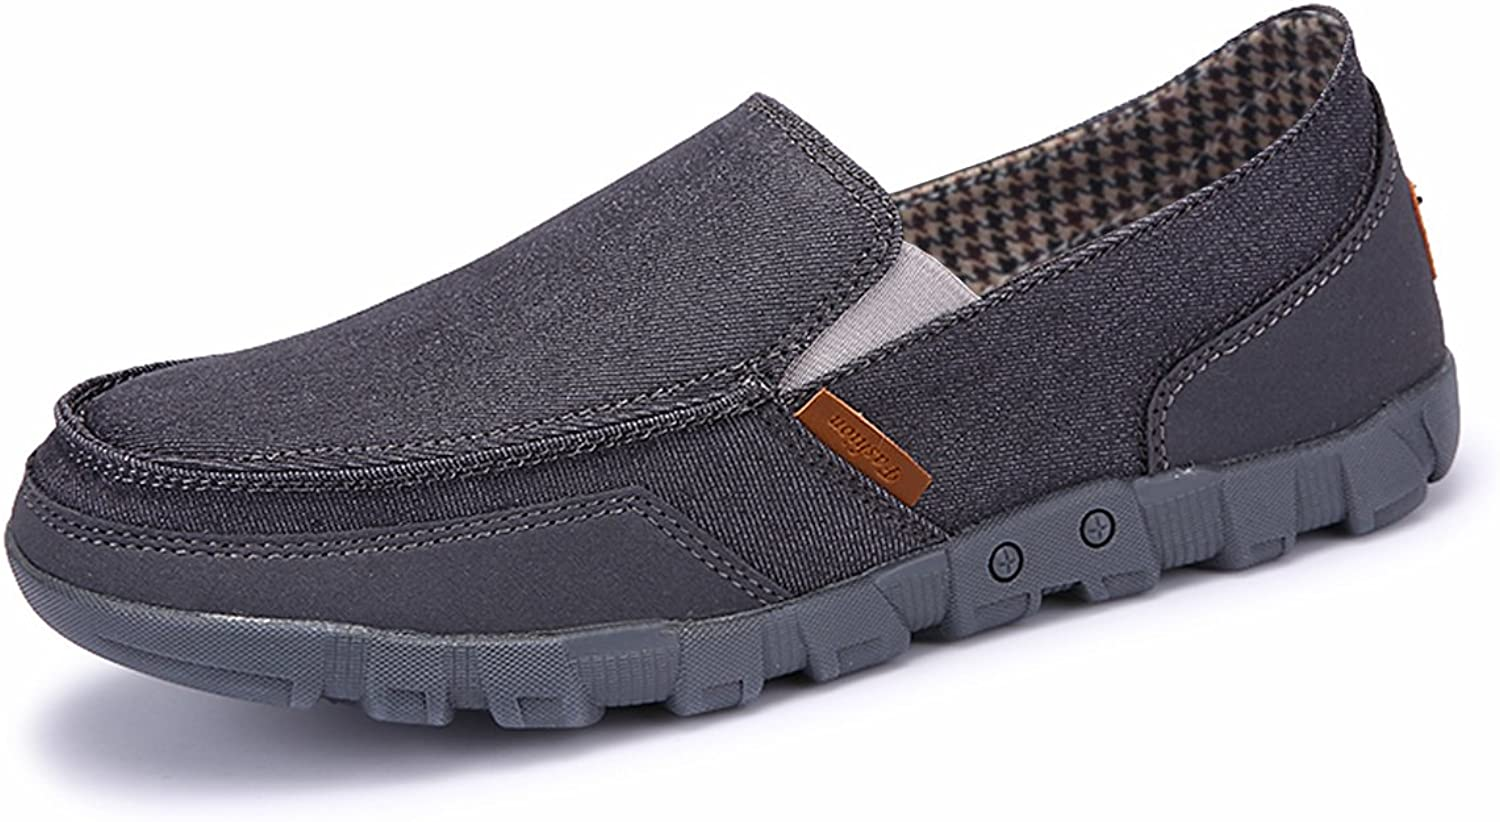 BEFAiR Slip on shoes for Men Canvas Comfort Casual Loafers Vintage Walking Sneakers Breathable Boat shoes